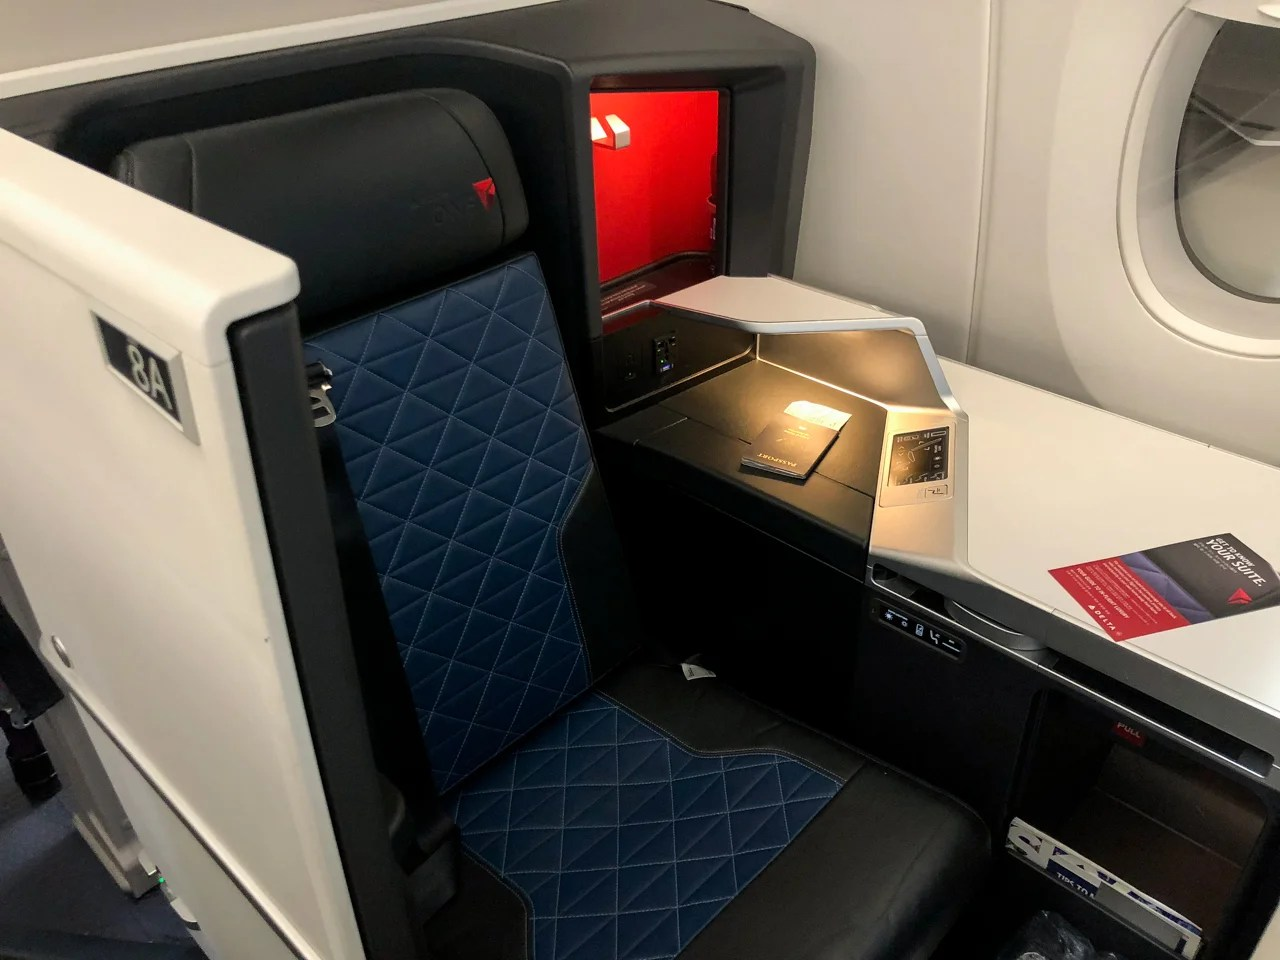 Review: Delta One Suites (A350) From Detroit to Seoul